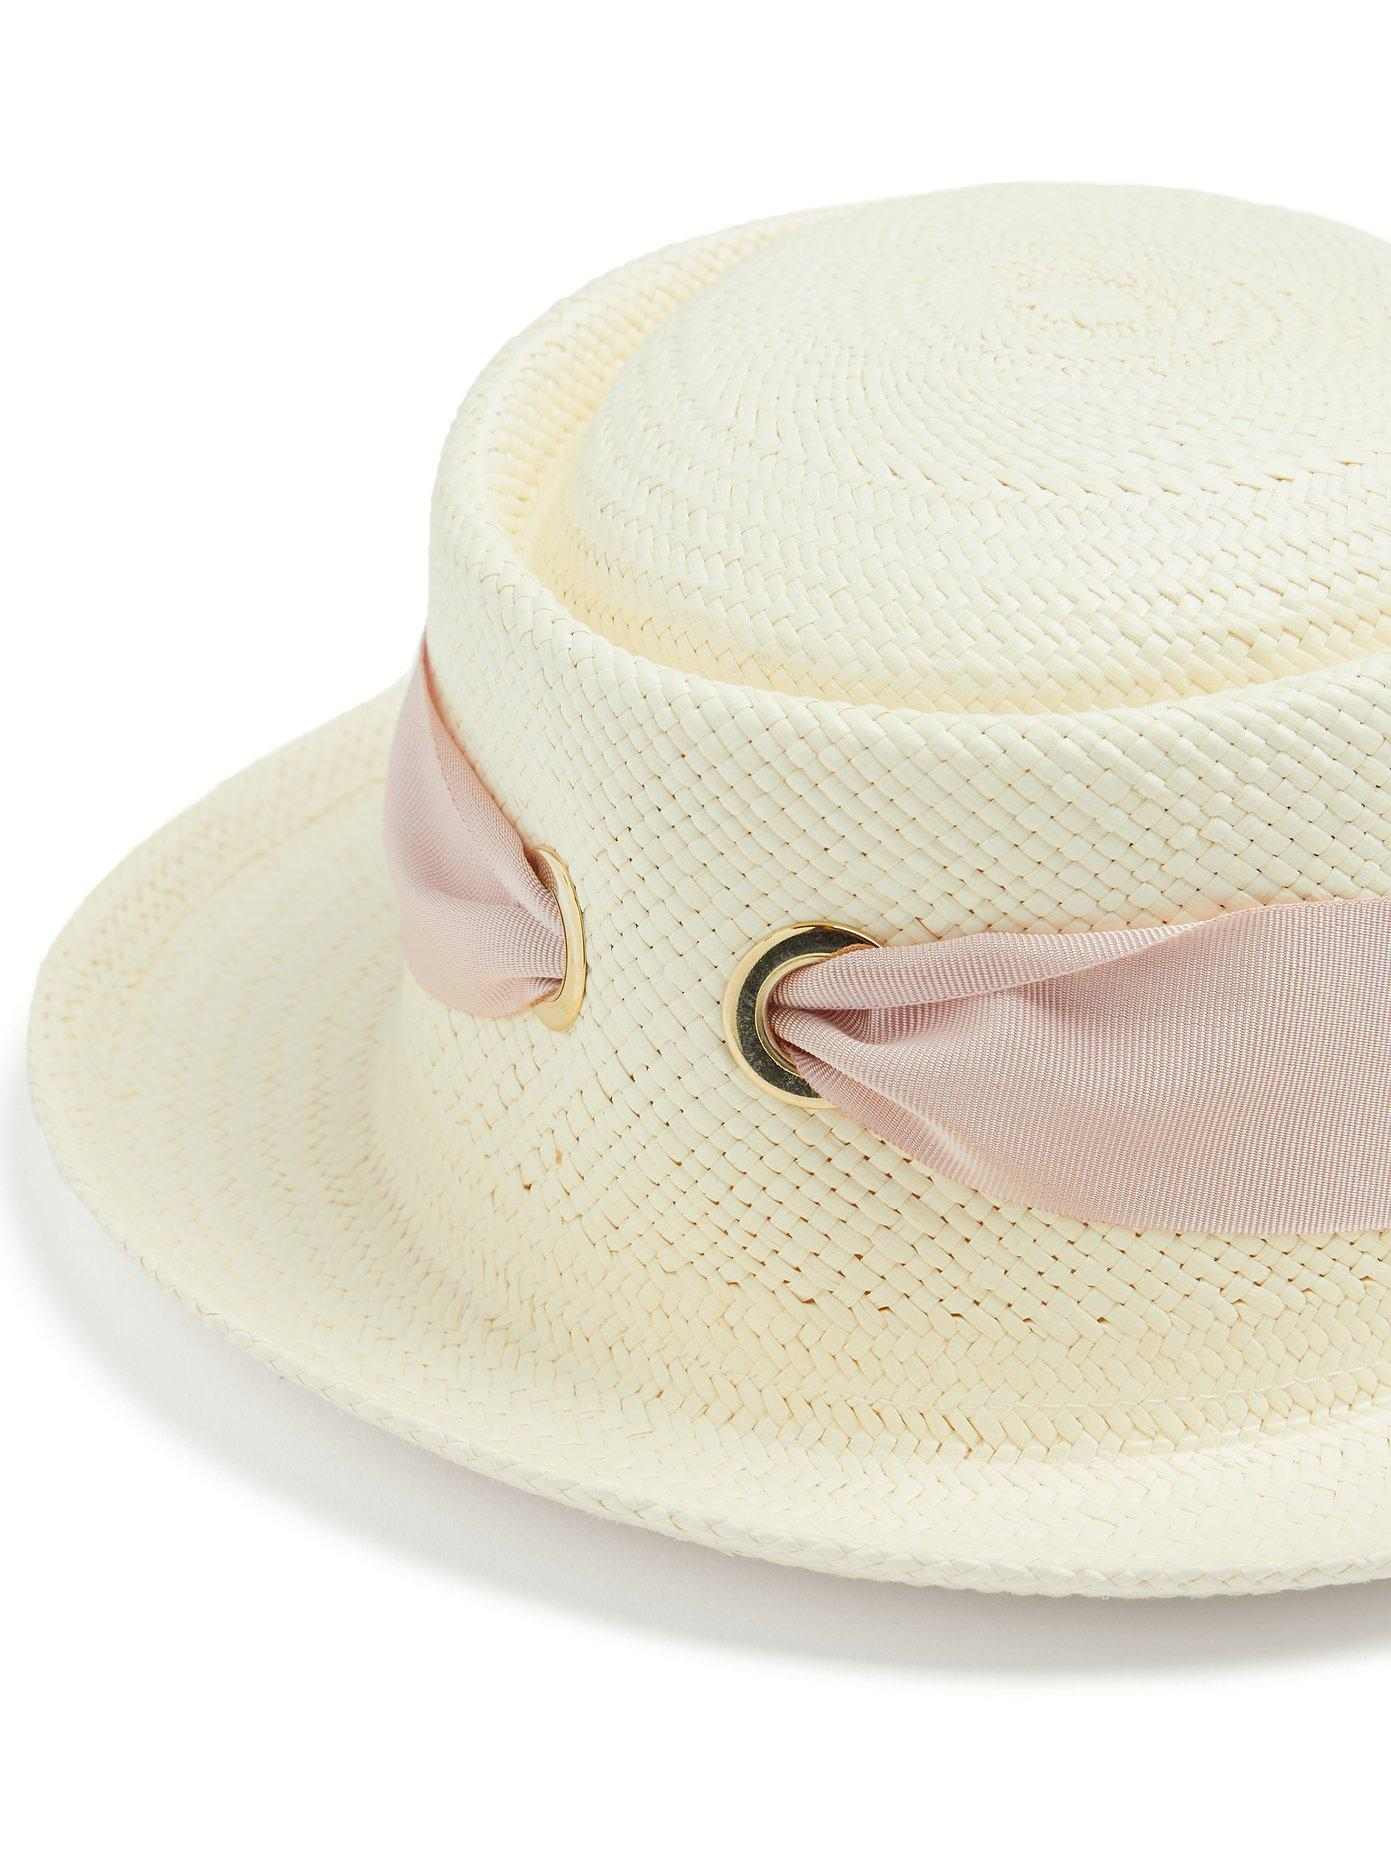 Faille-ribbon bow-tie straw hat Federica Moretti Outlet 2018 Newest Cheap Sale Genuine Buy Cheap Good Selling 72LkuEh